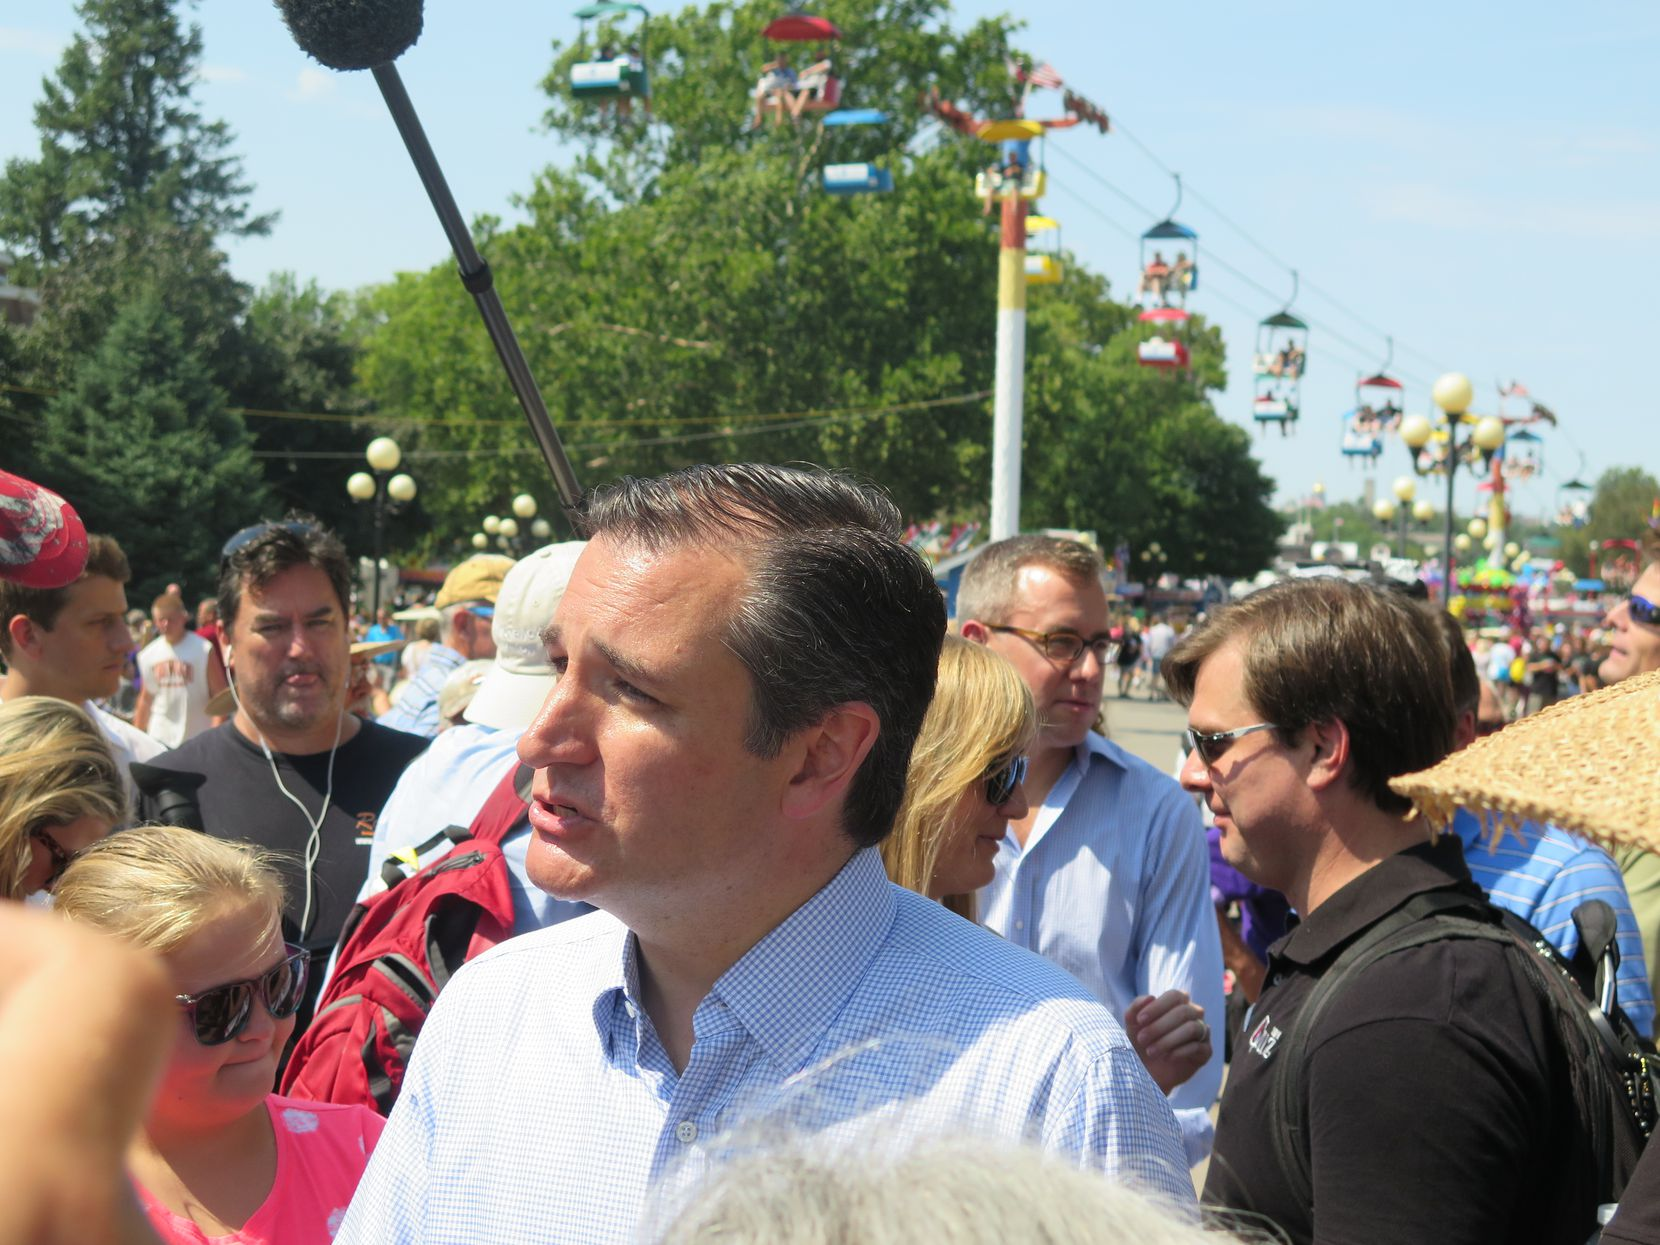 Sen. Ted Cruz campaigned for the GOP presidential nomination at the Iowa State Fair on Aug. 21, 2015.